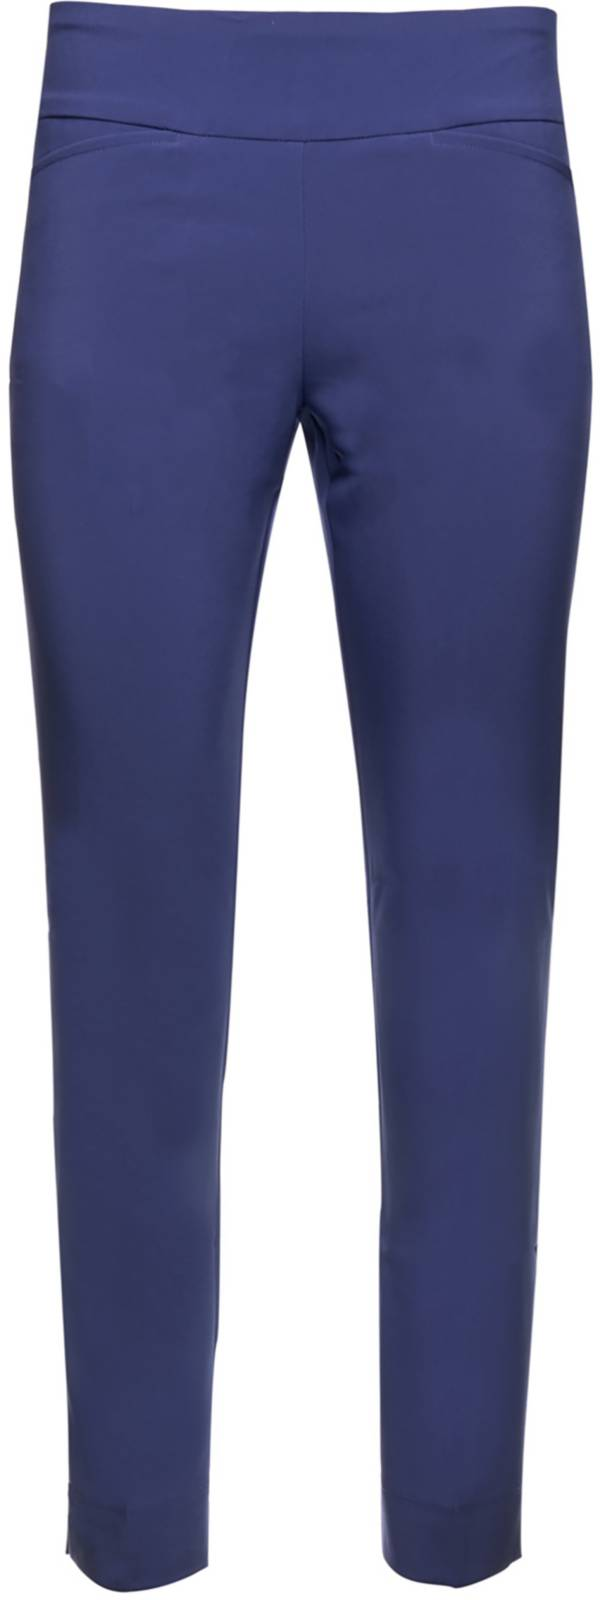 IBKUL Women's Ankle Length Golf Pants product image